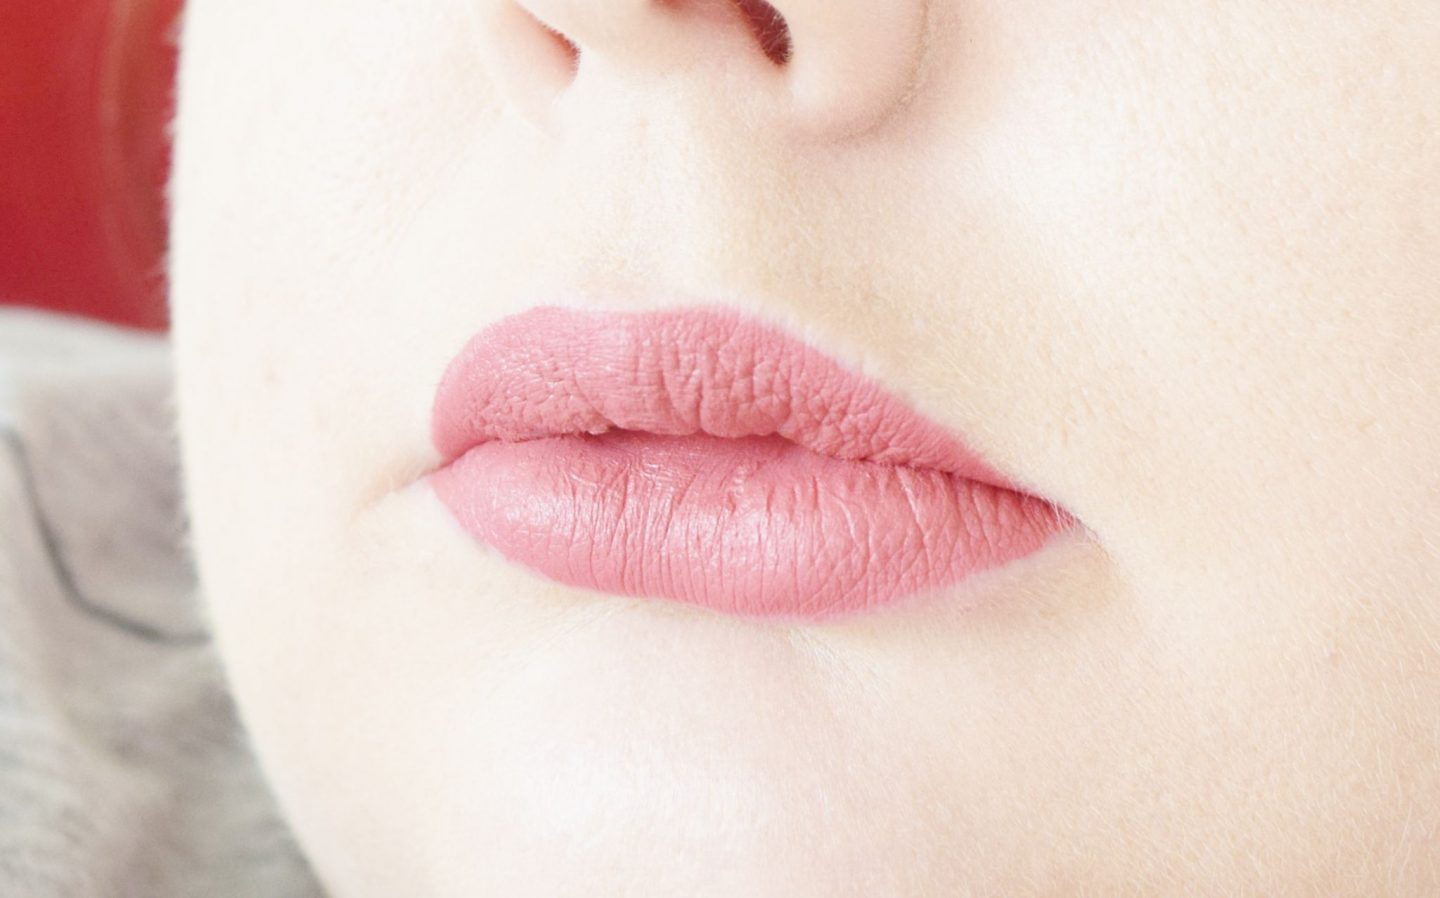 Charlotte Tilbury Hollywood Lips Matte Contour Liquid Lipstick in Too Bad I'm Bad swatch